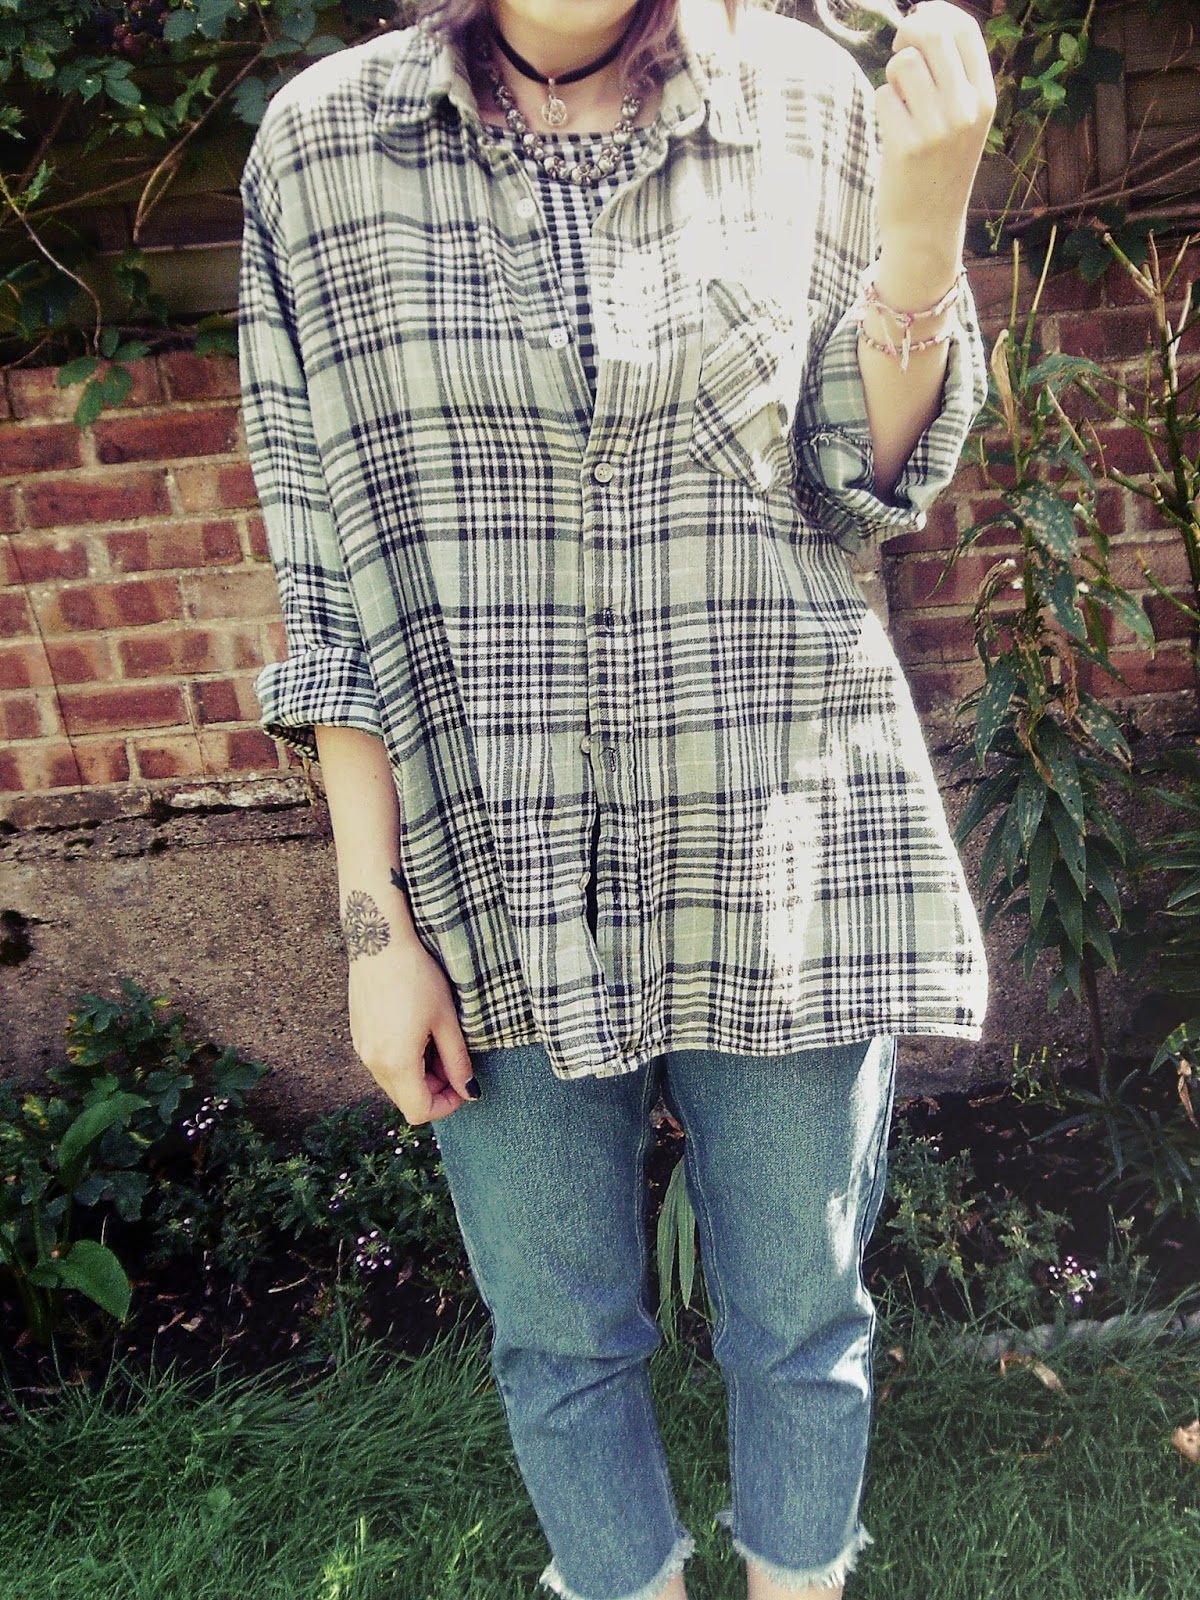 90's, 90's fashion, 90's style, 90's grunge, spaghetti top, mom jeans, platform shoes, platform boots, flatform shoes, flatform boots, plaid shirt, oversized shirt, oversized plaid shirt